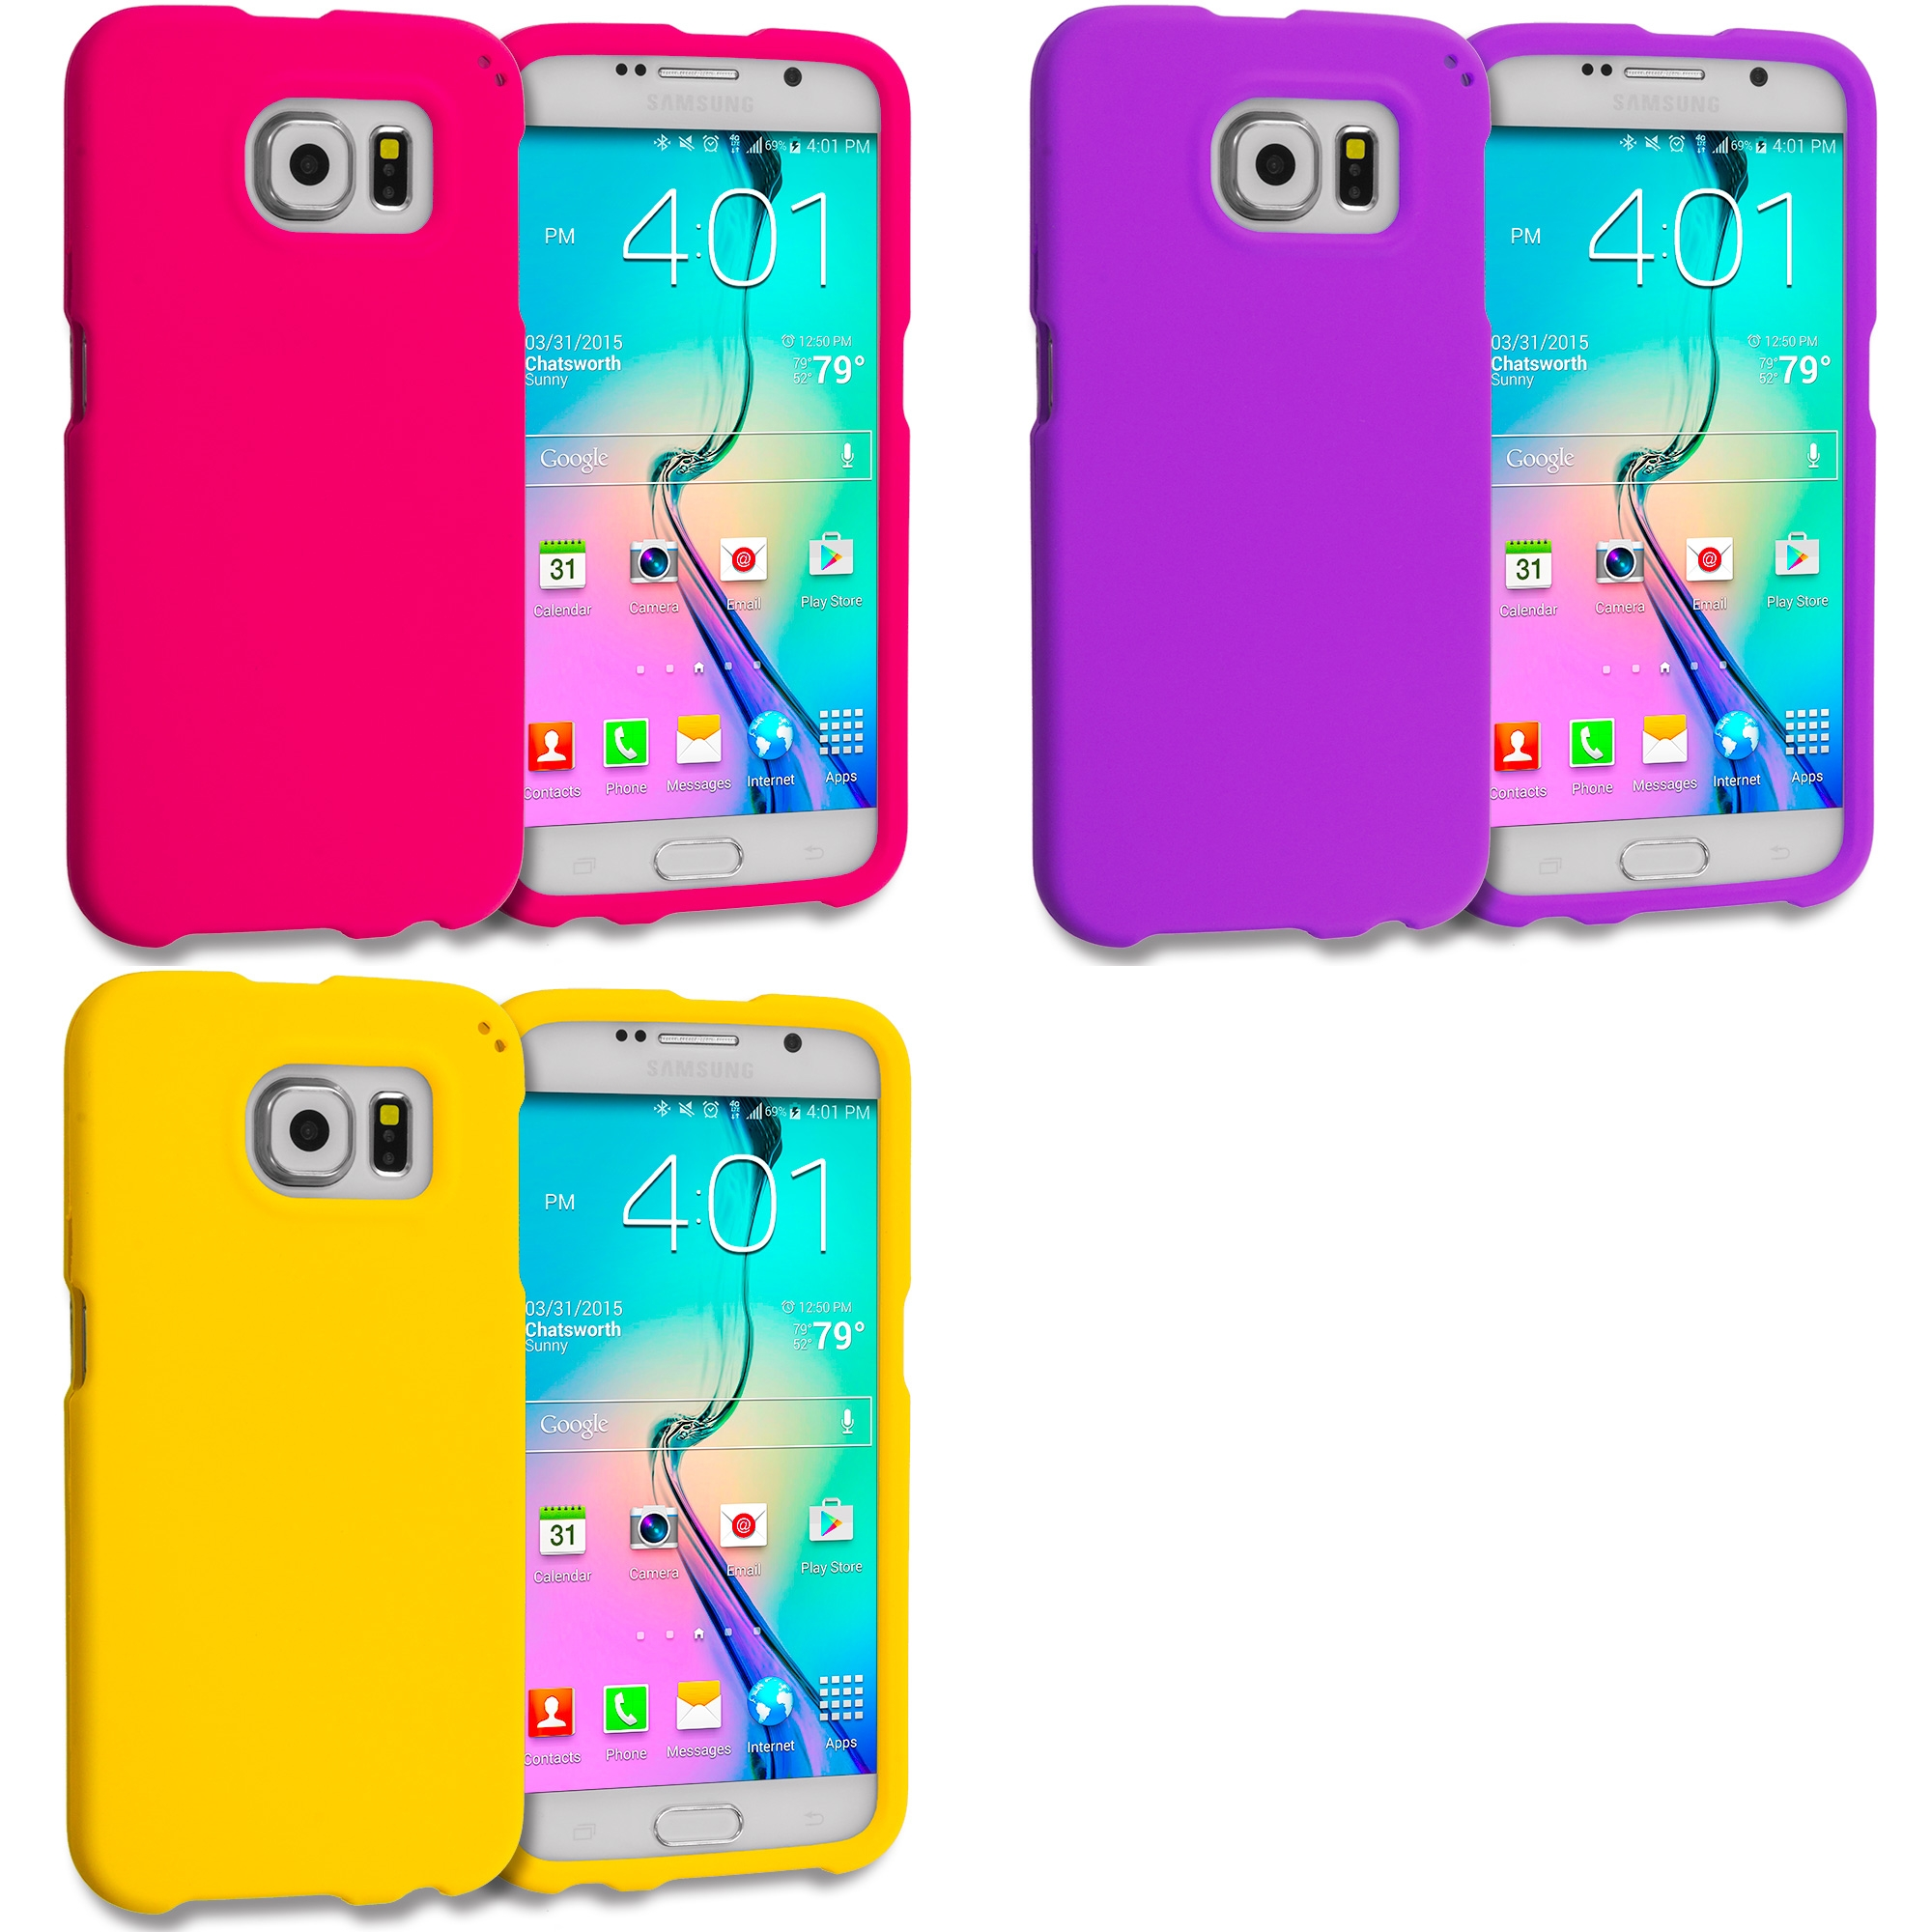 Samsung Galaxy S6 3 in 1 Combo Bundle Pack - Hard Rubberized Case Cover